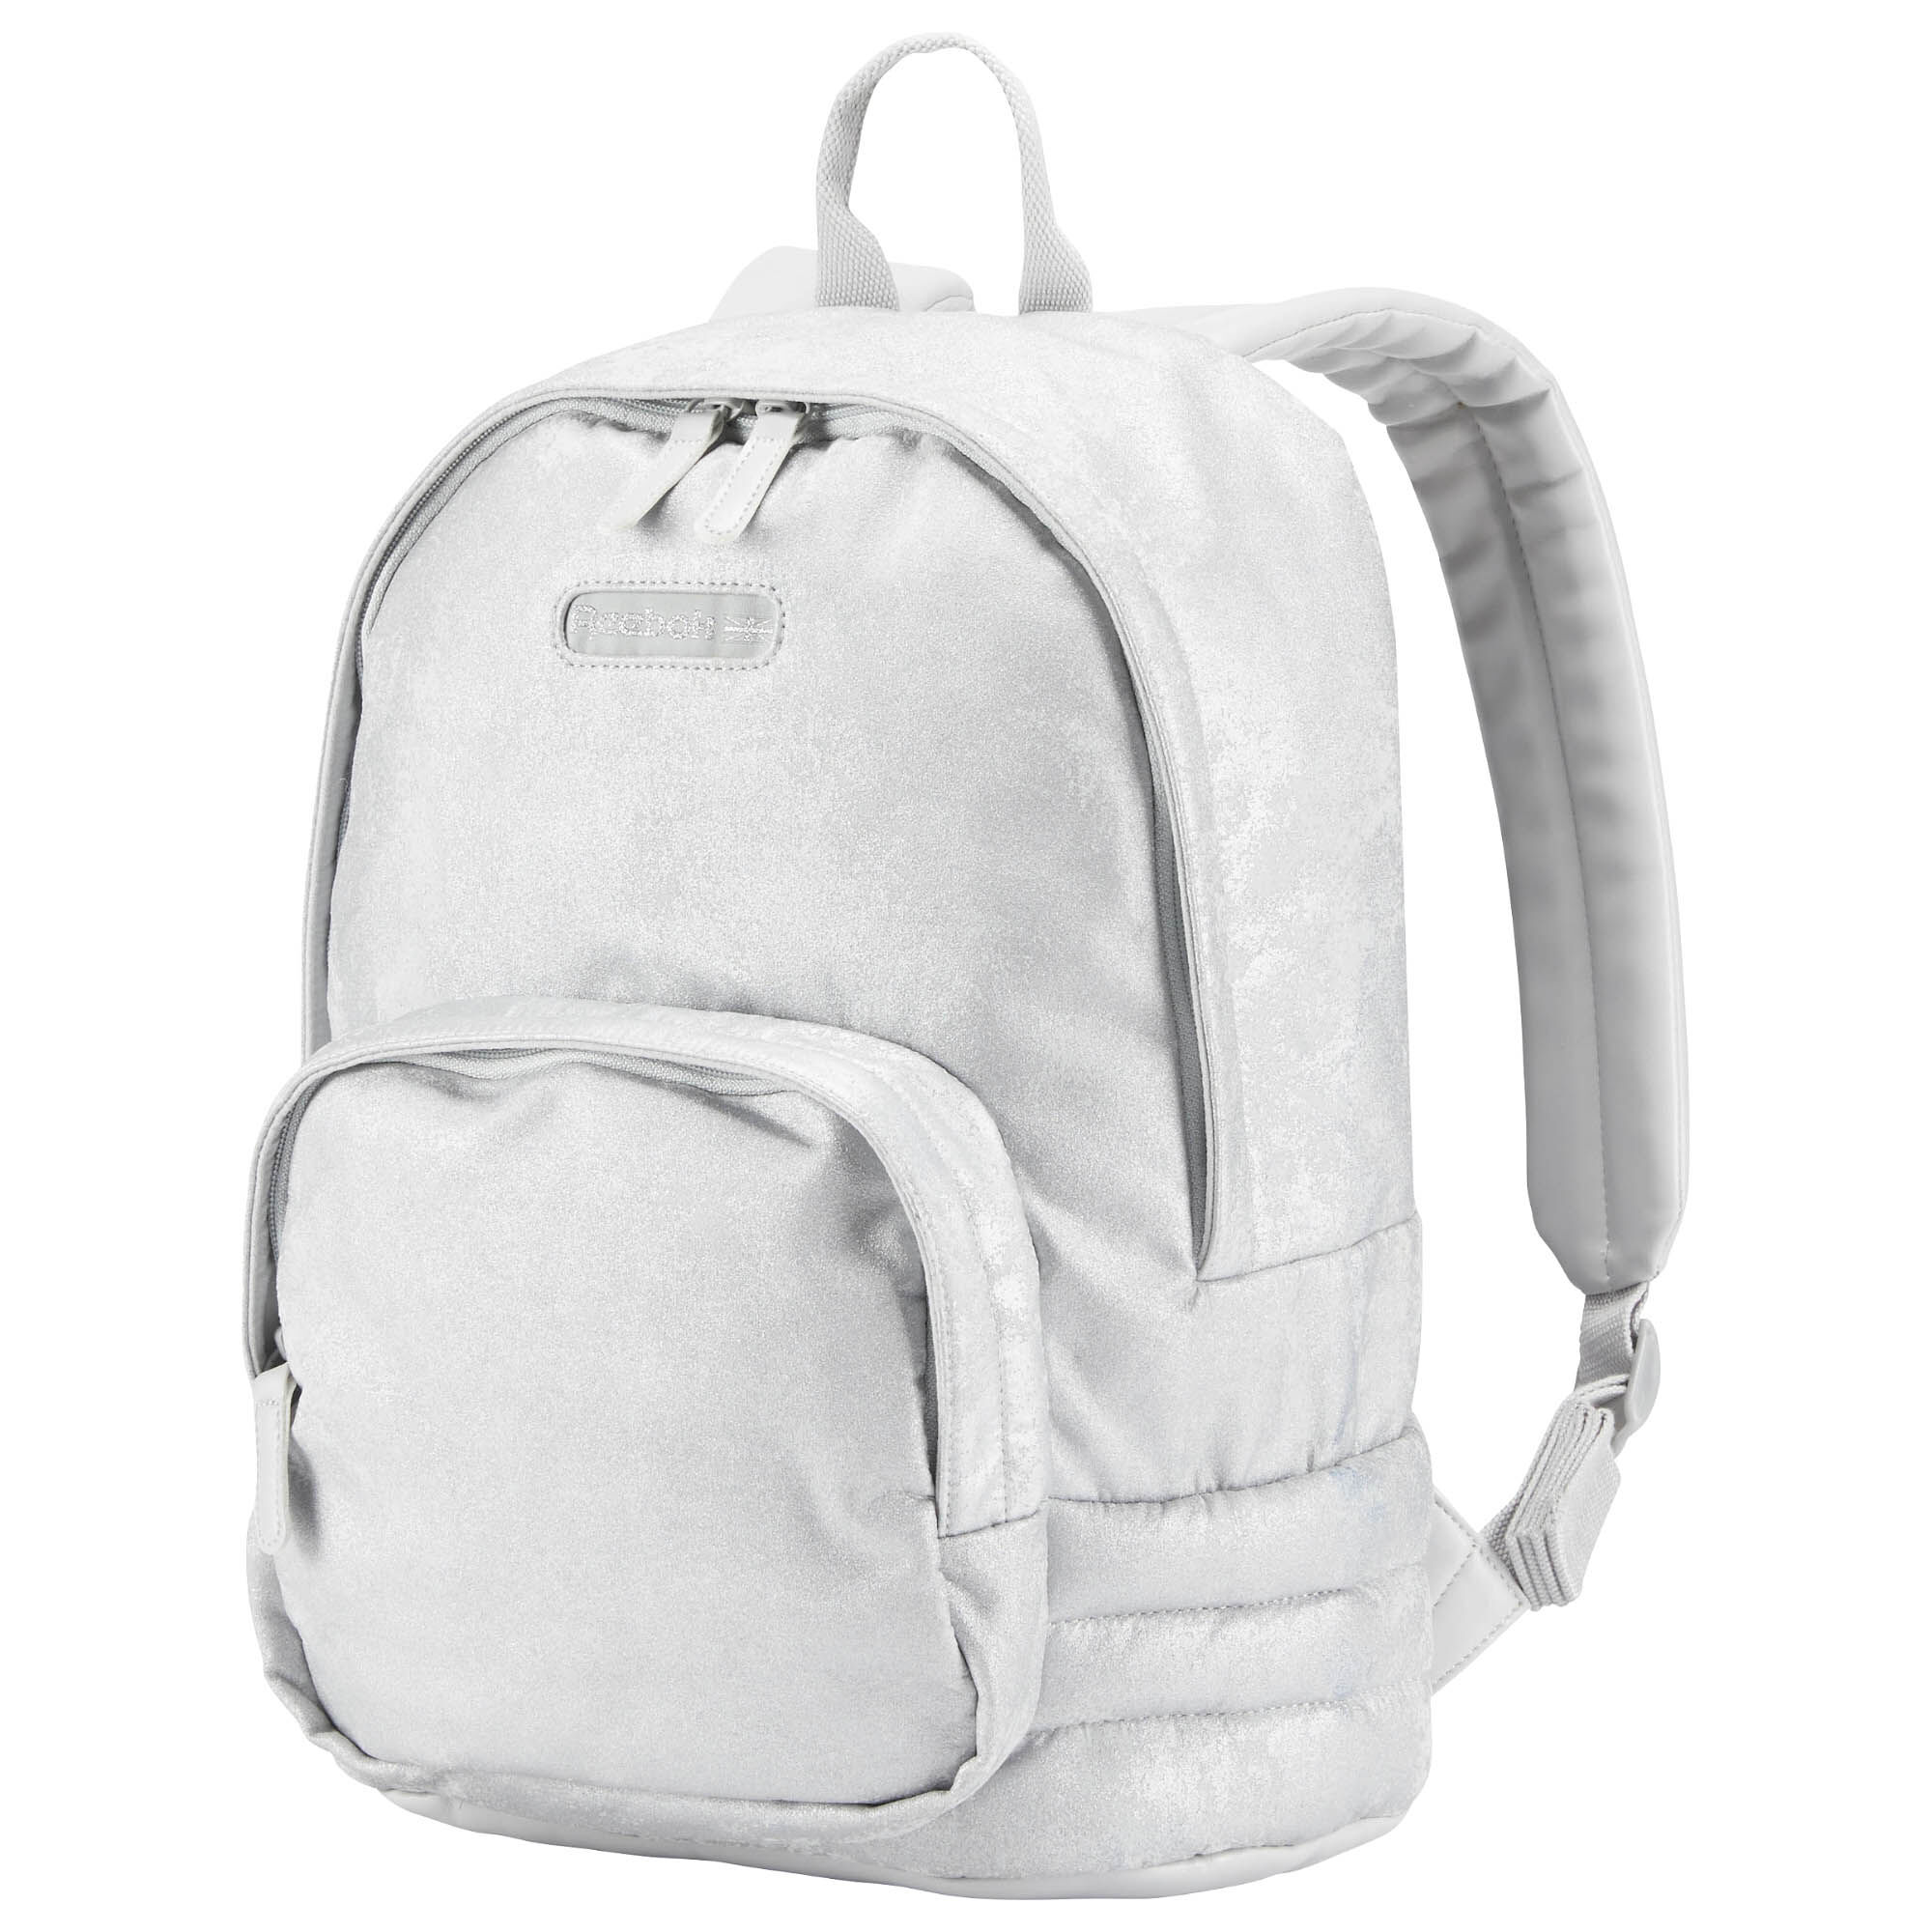 reebok backpack white cheap   OFF55% The Largest Catalog Discounts